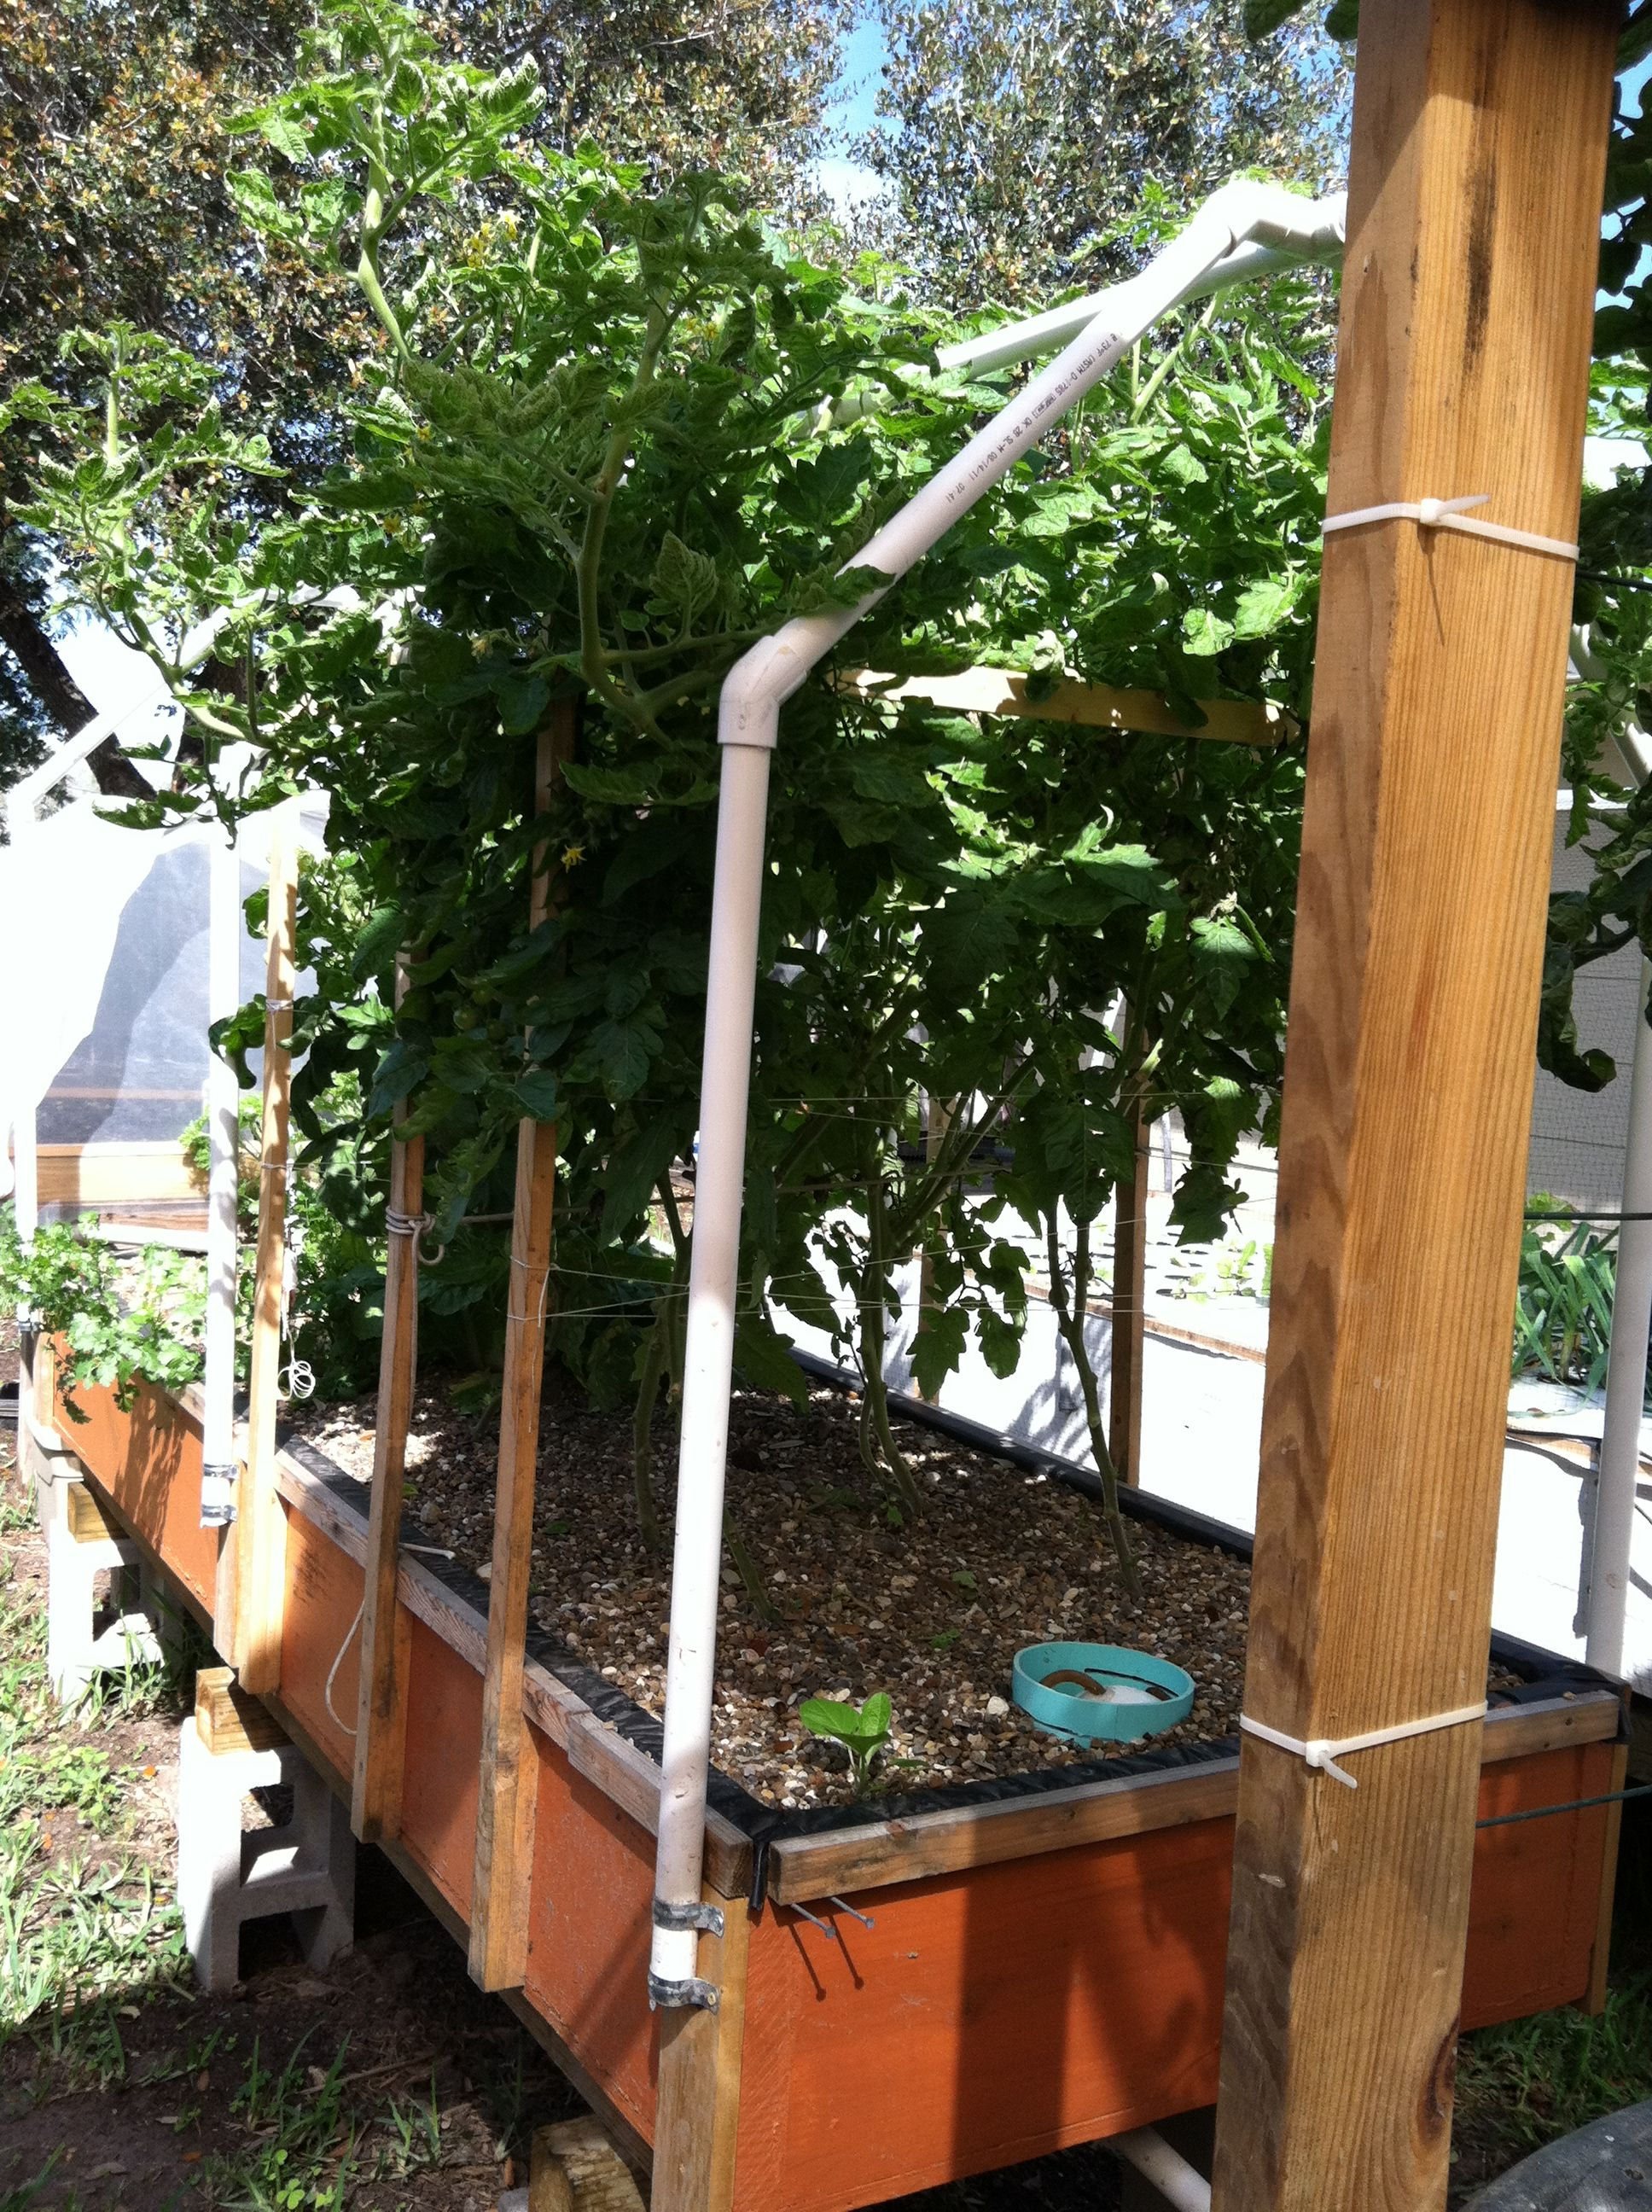 this is the how our tomatoes grow these are in a gravel bed in